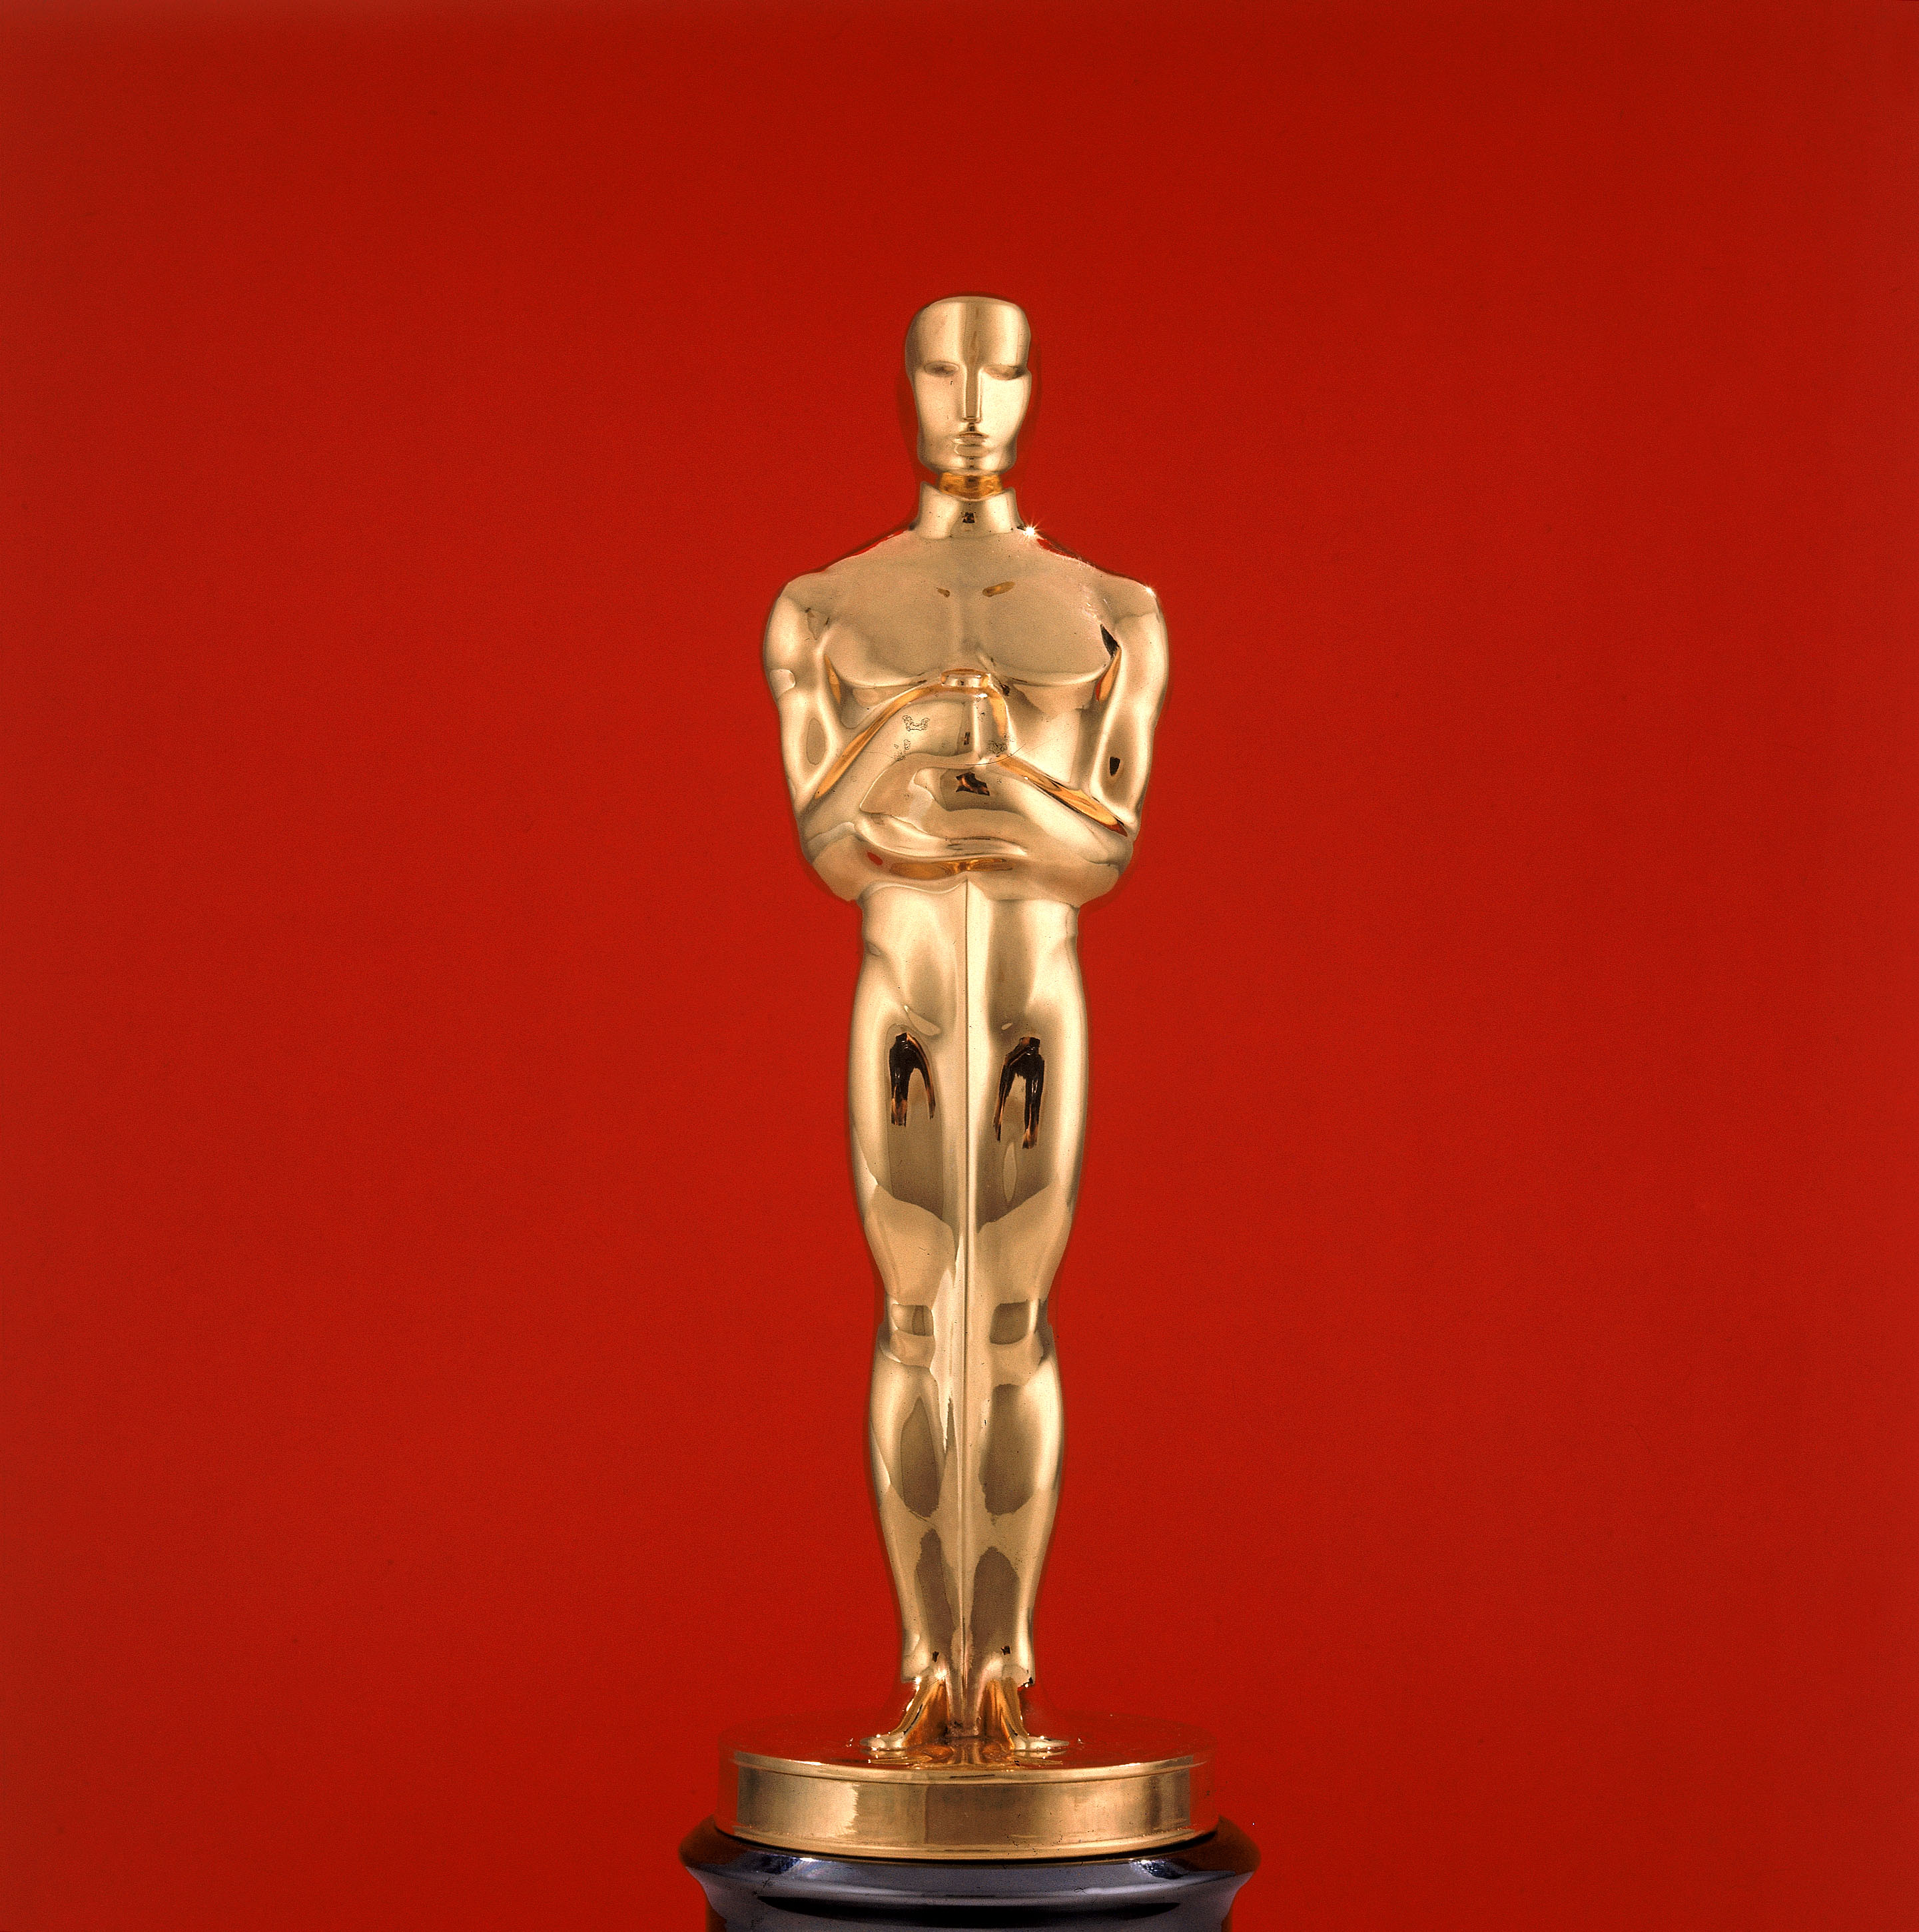 Sag Awards Julia Roberts Red Carpet Video n 4630407 additionally 1293697 furthermore  further XIpVe8RNe moreover Big 20trucks. on life size oscar statue